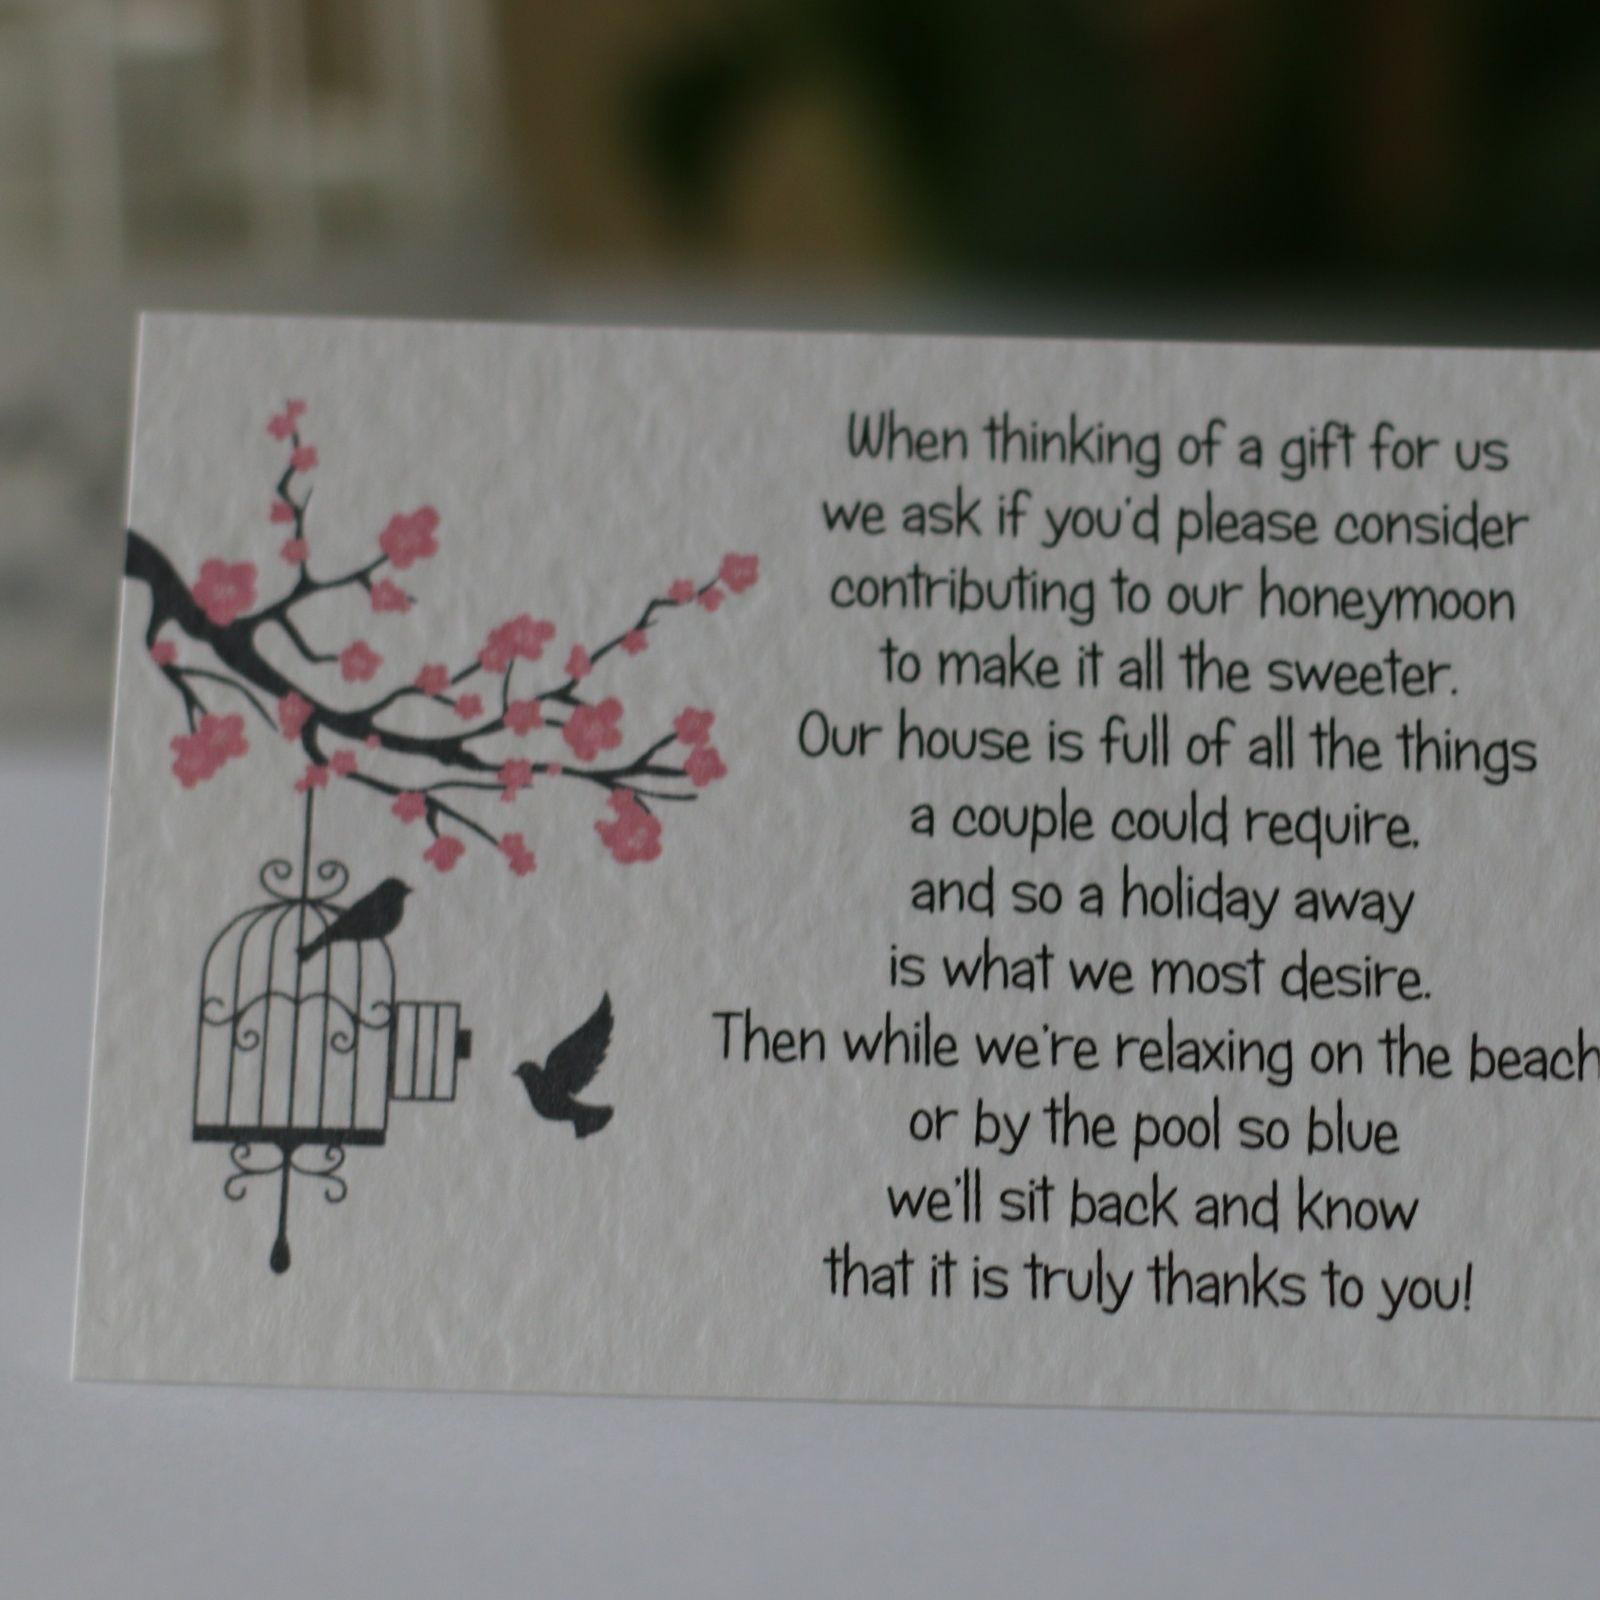 Wedding Gift Wording For Honeymoon: Details About Blossom Wedding Gift Poem Cards Money Cash